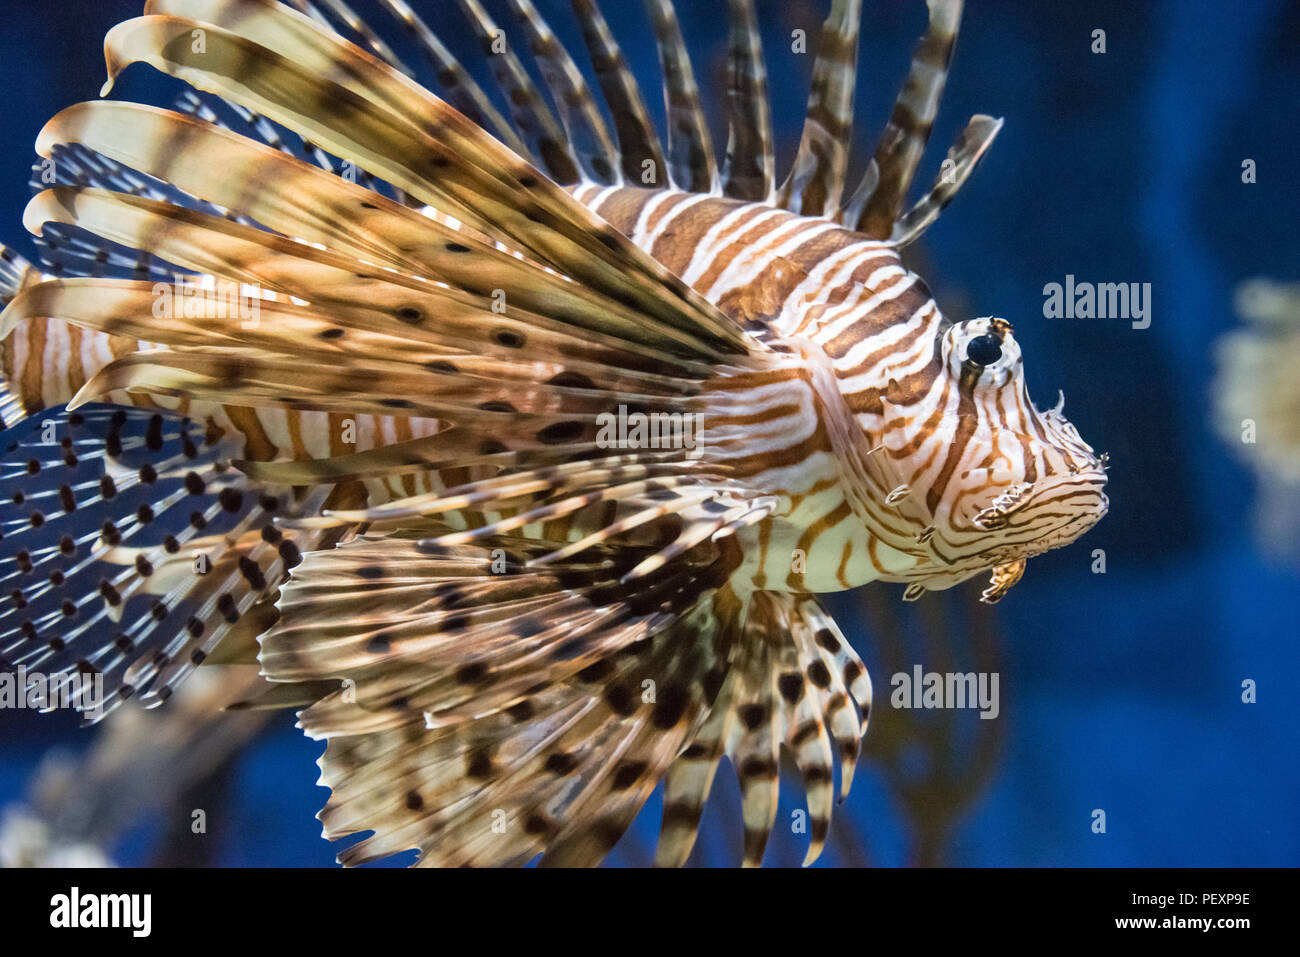 Red lionfish (Pterois volitans), a beautiful but venomous coral reef fish, at the Georgia Aquarium in Atlanta, Georgia. (USA) - Stock Image